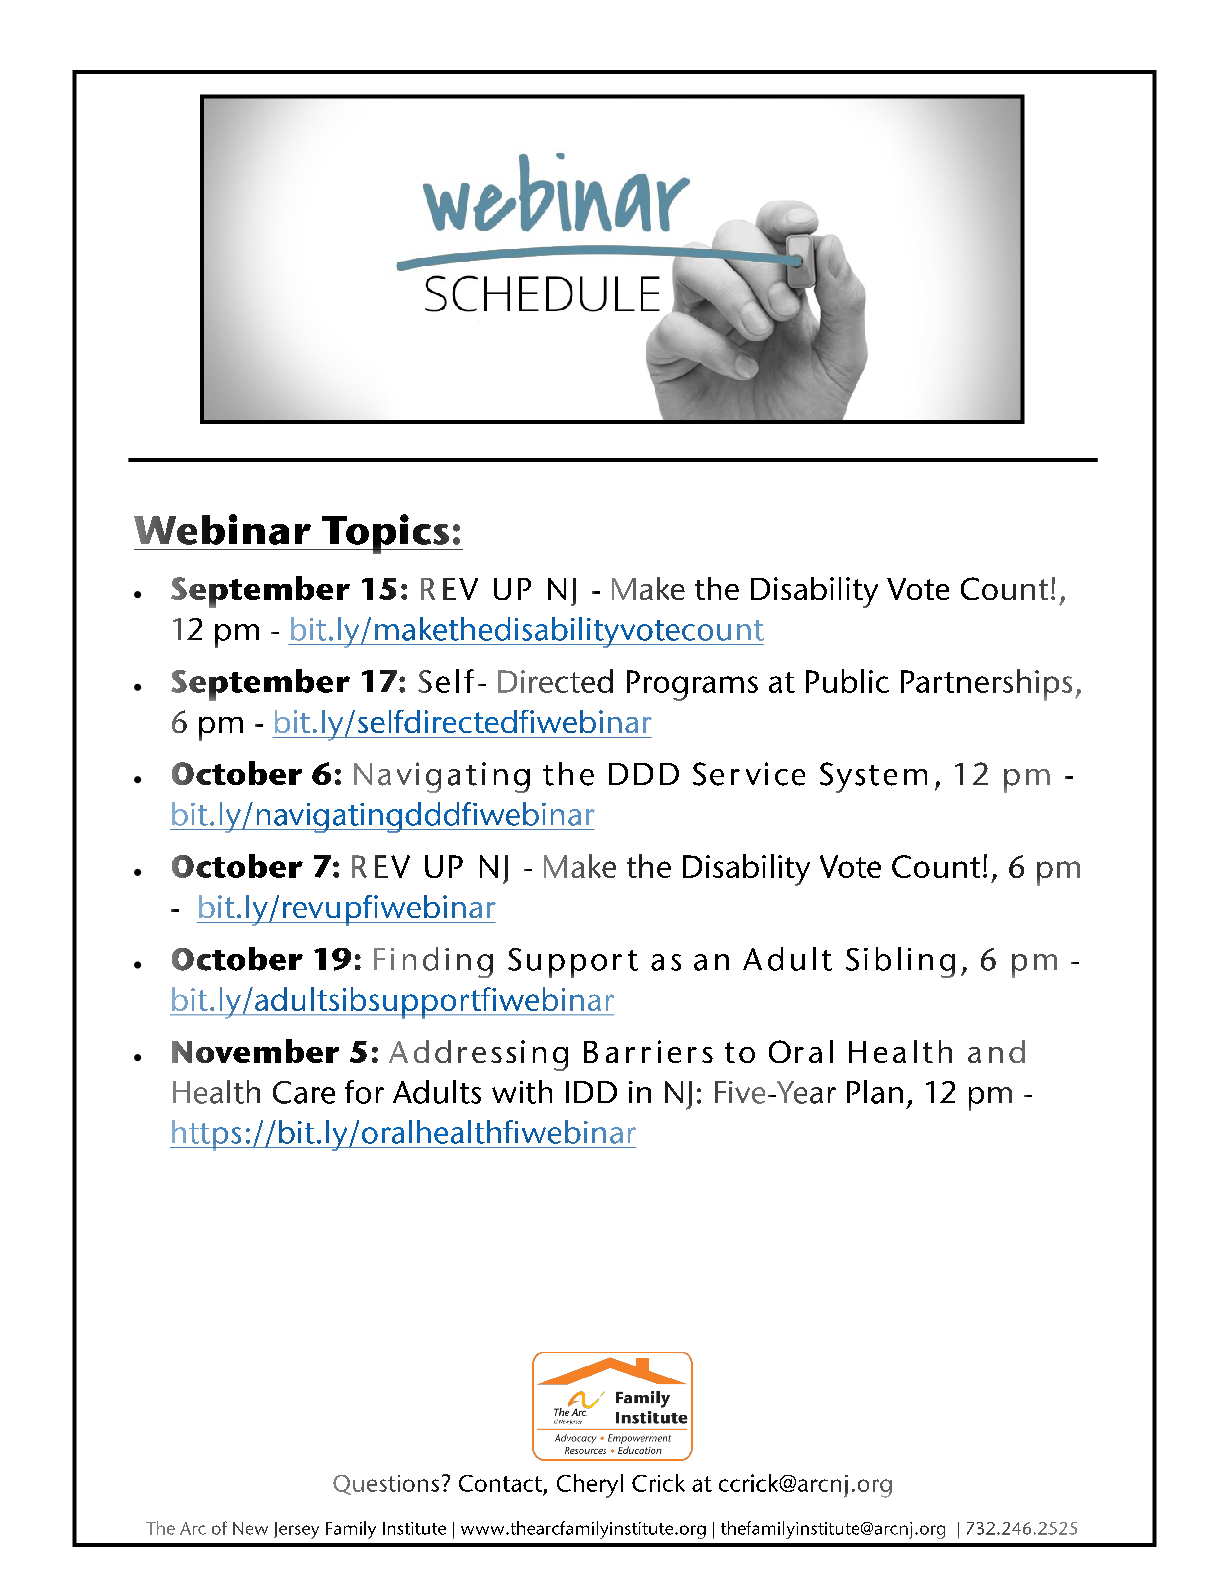 Share these webinars with a friend! Download the flyer HERE.